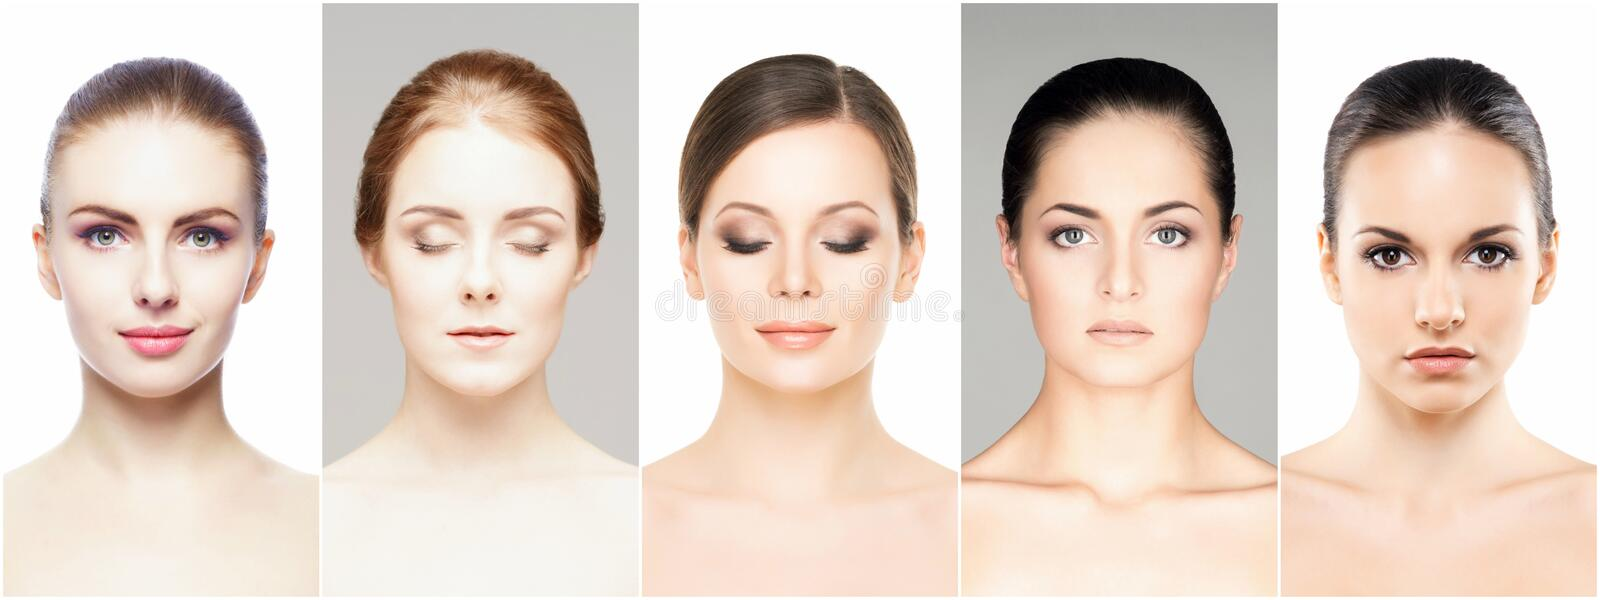 Beautiful, healthy and young female portraits collection stock photography